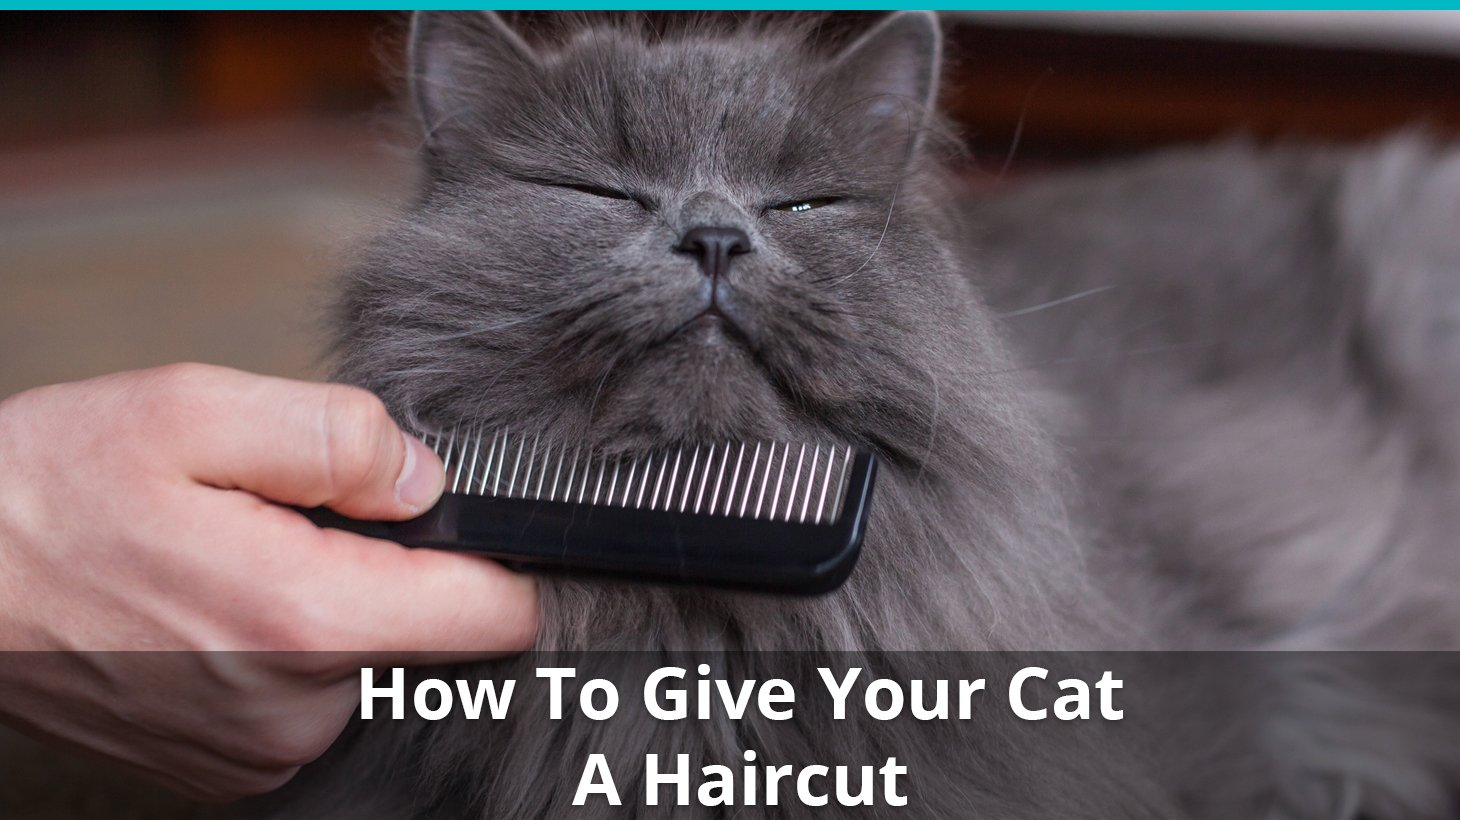 How To Give Your Cat A Haircut (Carefully!)